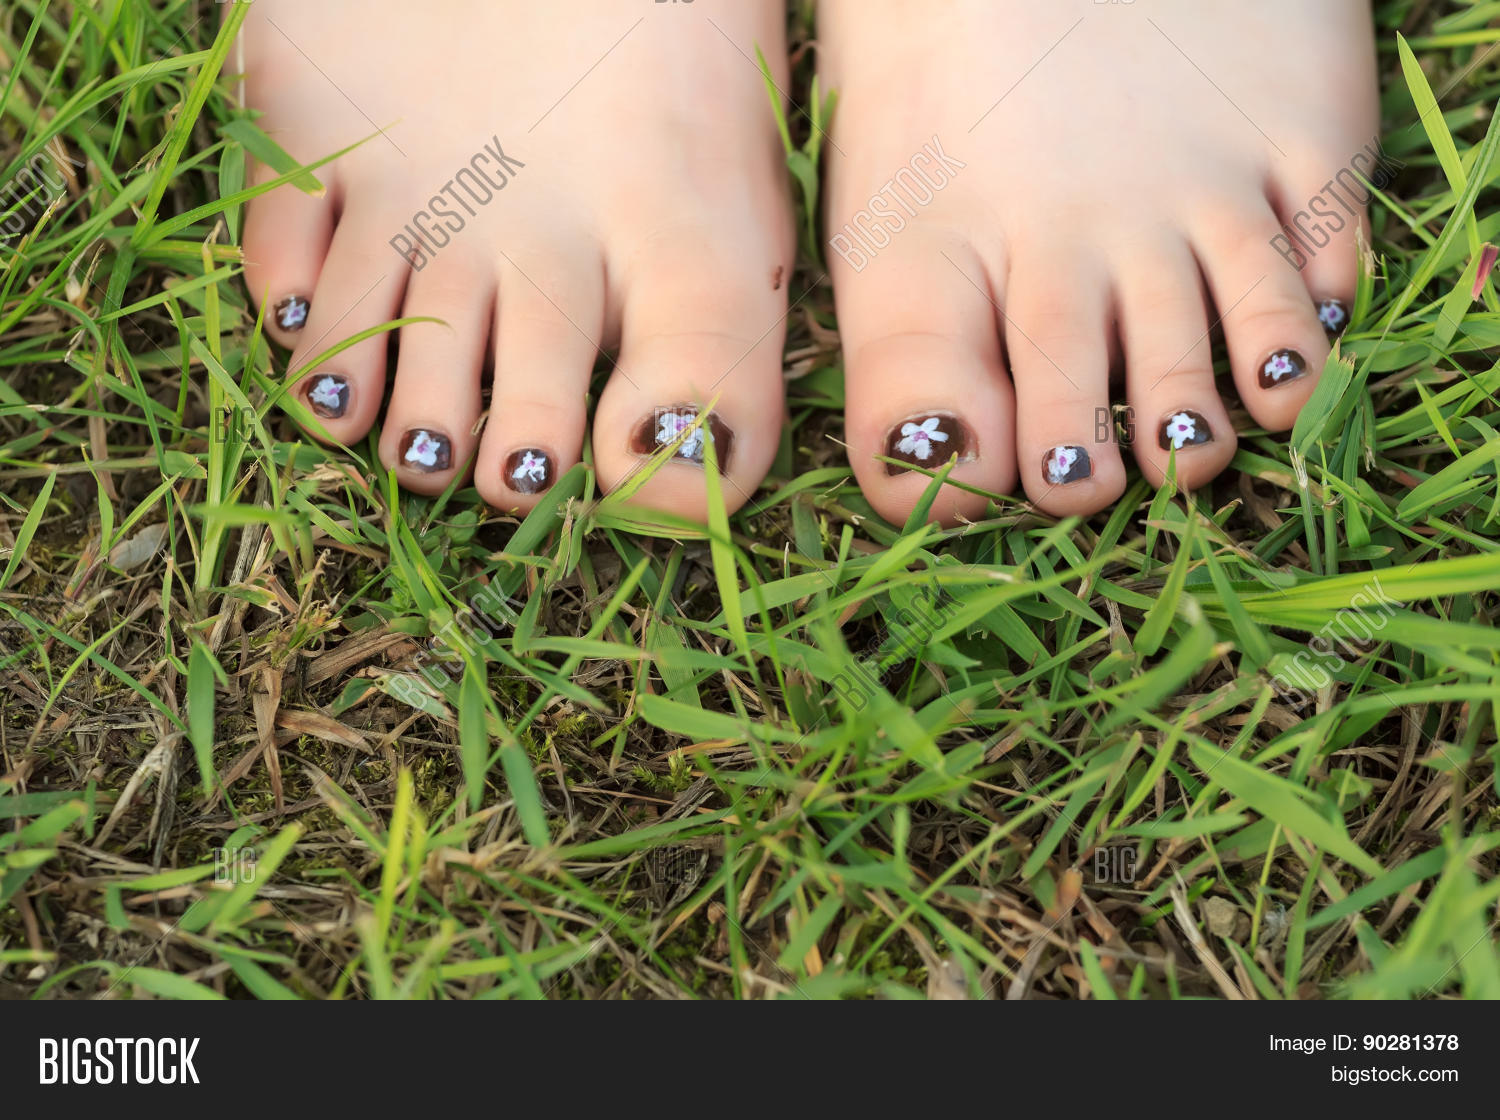 barefoot,caucasian,child,childhood,childish,close-up,covering,digit,discalced,divot,ecology,environment,fashion,feet,female,feminine,field,foot,garden,girl,girlish,golf,greensward,hallux,hobby,kid,lawn,lush,meadow,nail art,natural,nature,pasture,pedicure,plantigrade,recreational,shoeless,smaragdine,sod,soles,standing,summer,sward,toe,toenails,turf,unshod,virid